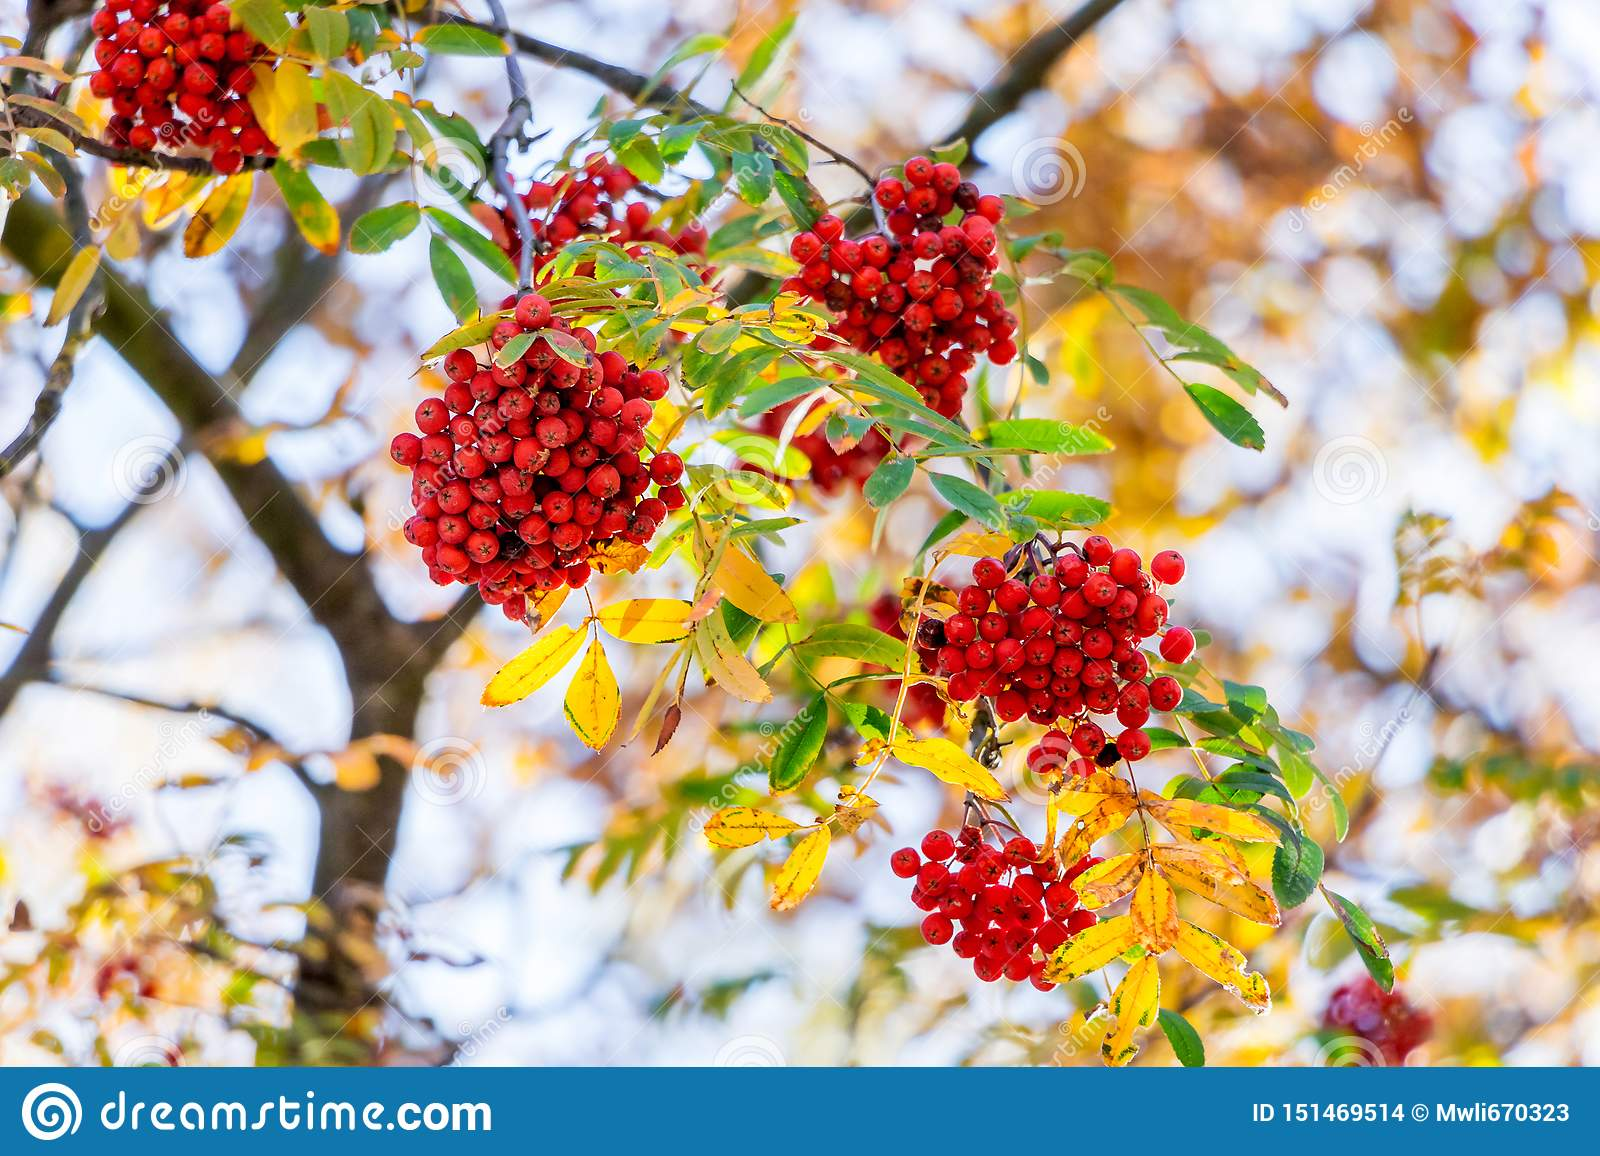 Red berries in the mountain ash on the tree among the colorful autumn leaves_